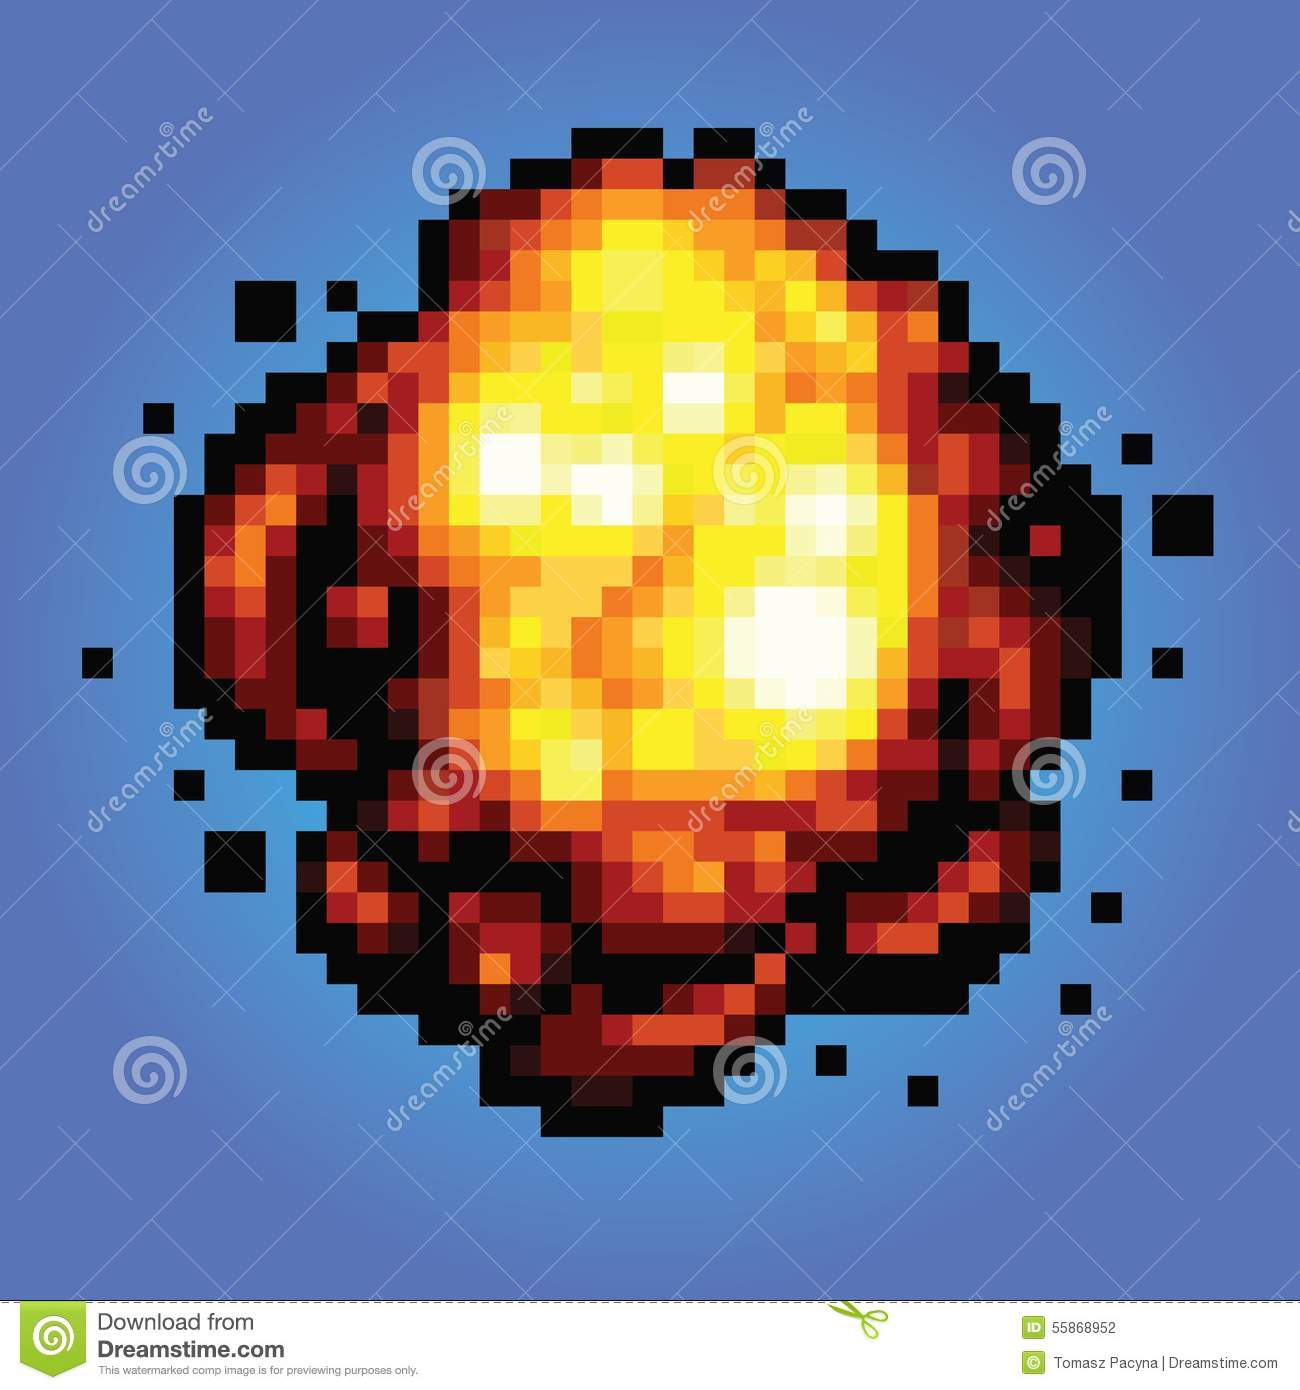 Bang Explosion Pixel Art Game Style Illustration Stock